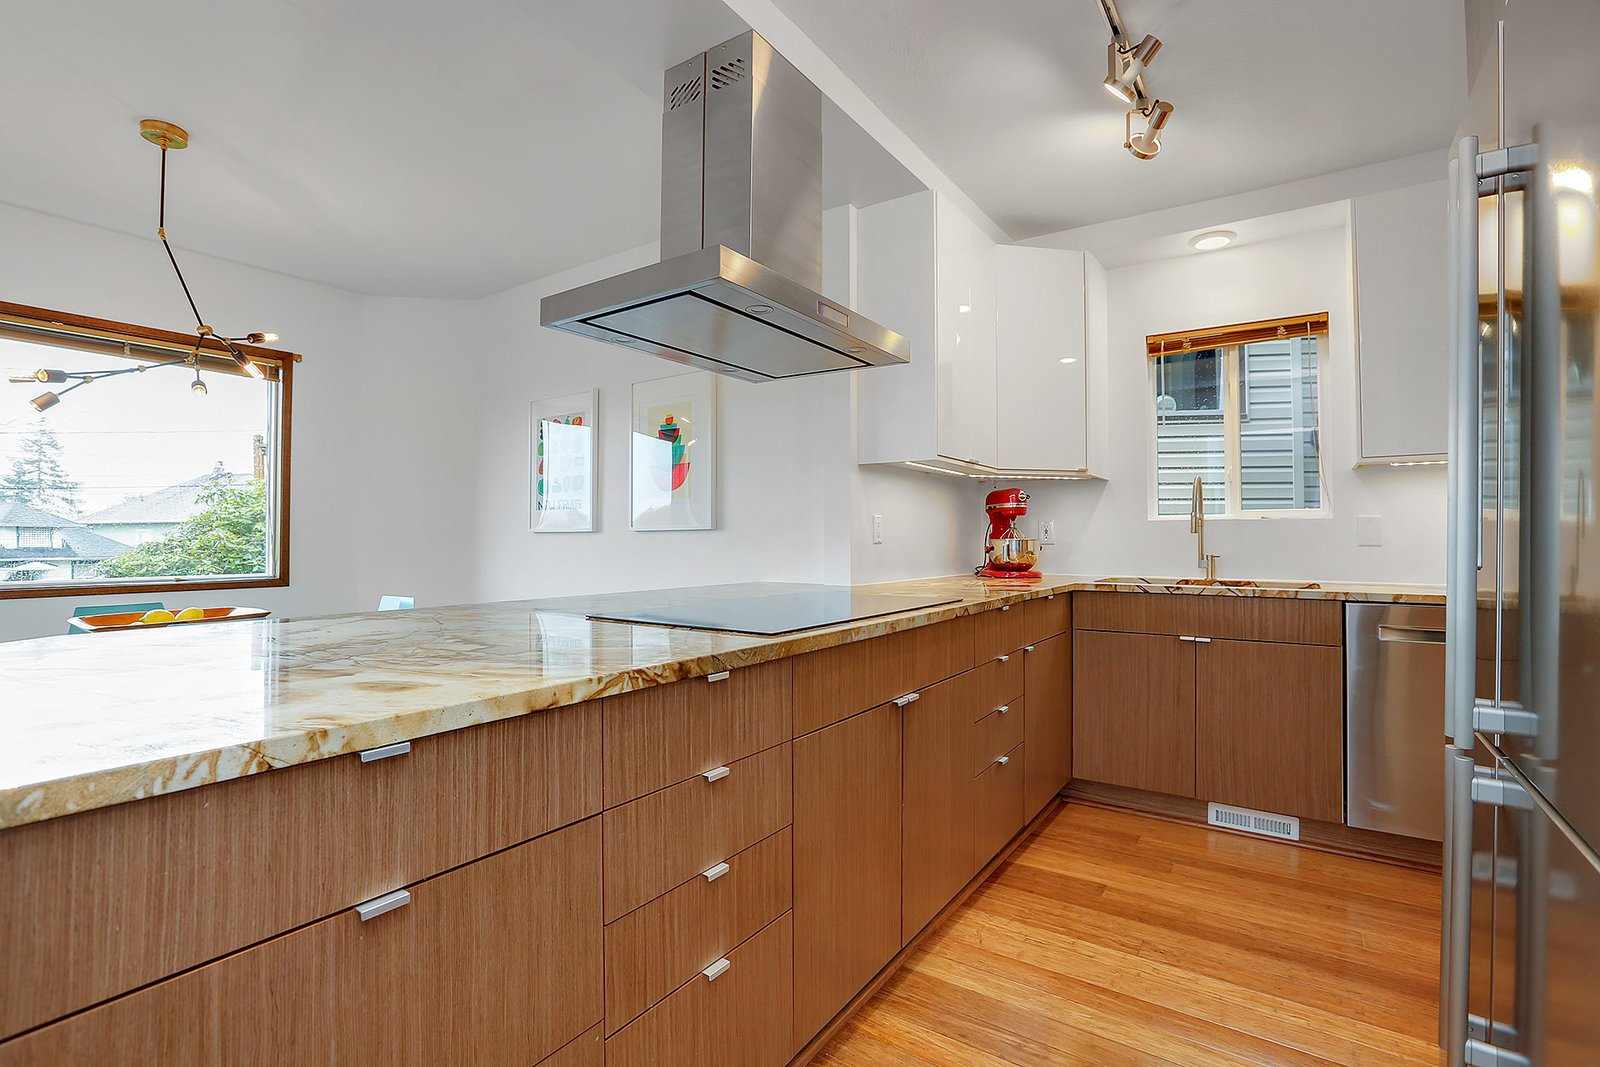 The kitchen features quartzite counter tops and custom cabinets by Semihandmade  The Monolith by Benita Hsueh Baker